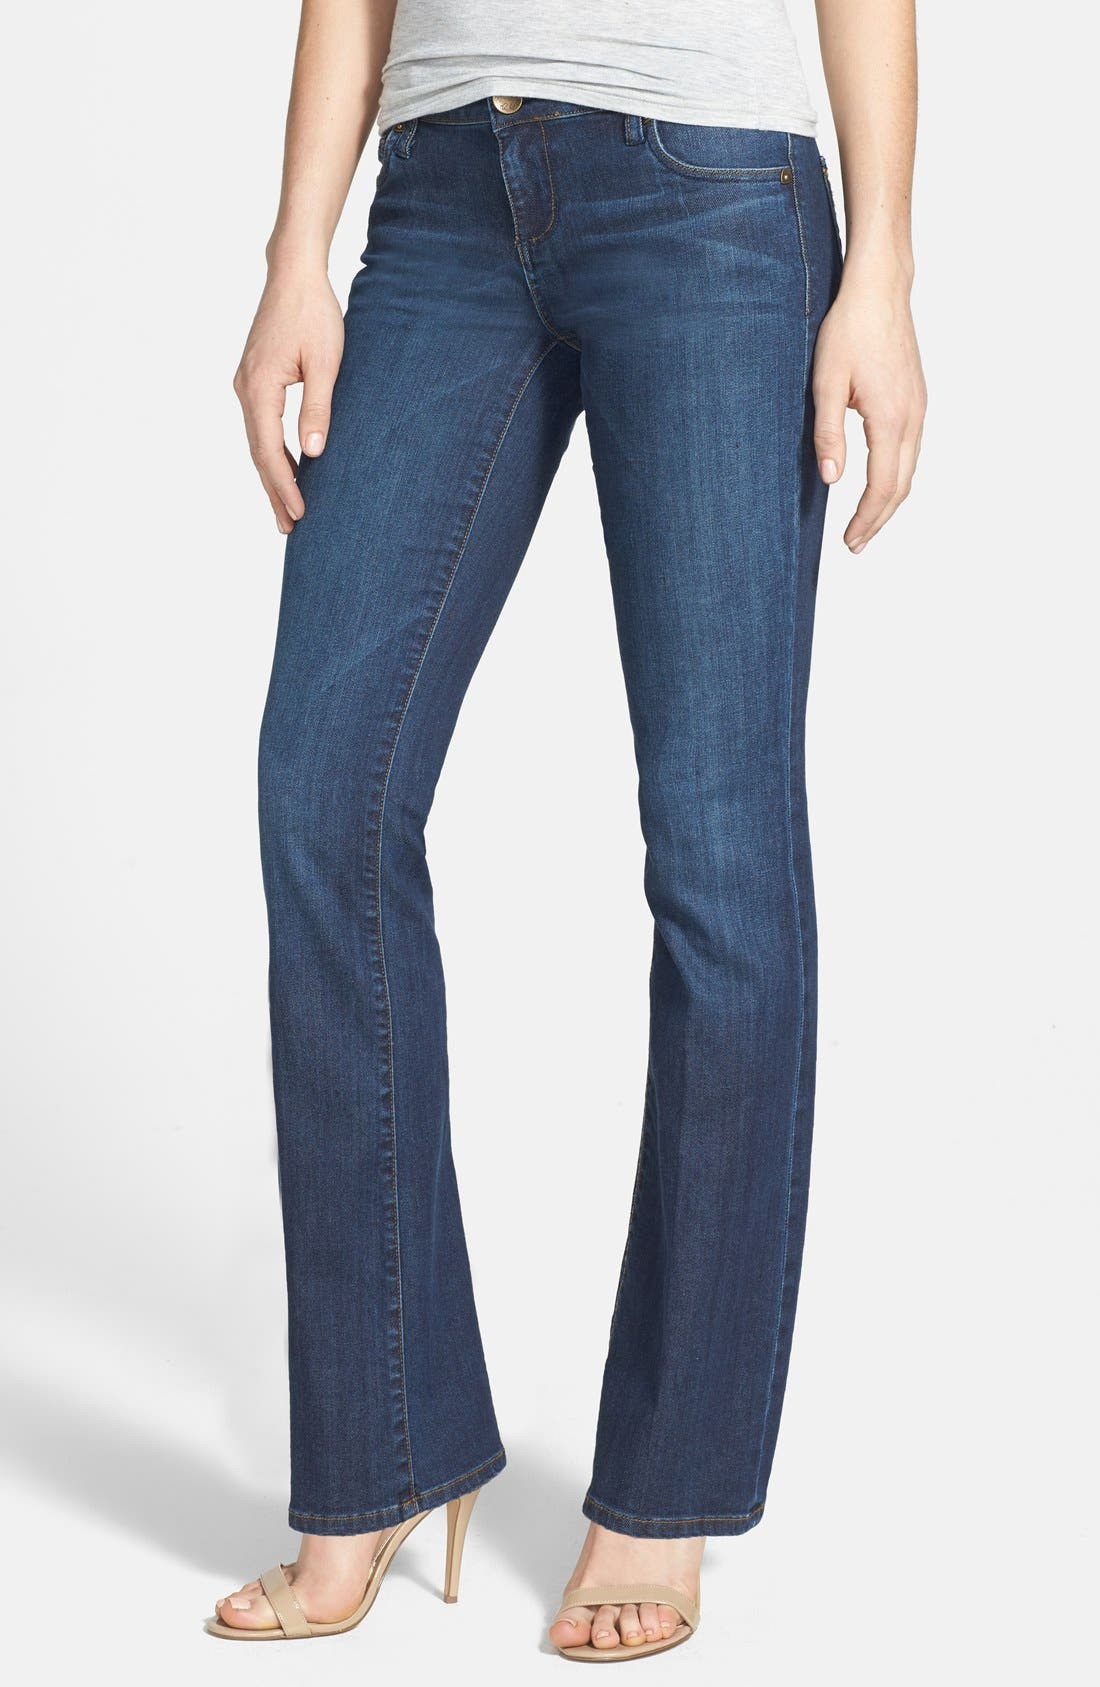 Alternate Image 1 Selected - KUT from the Kloth 'Farrah' Baby Bootcut Jeans (Whim) (Short)